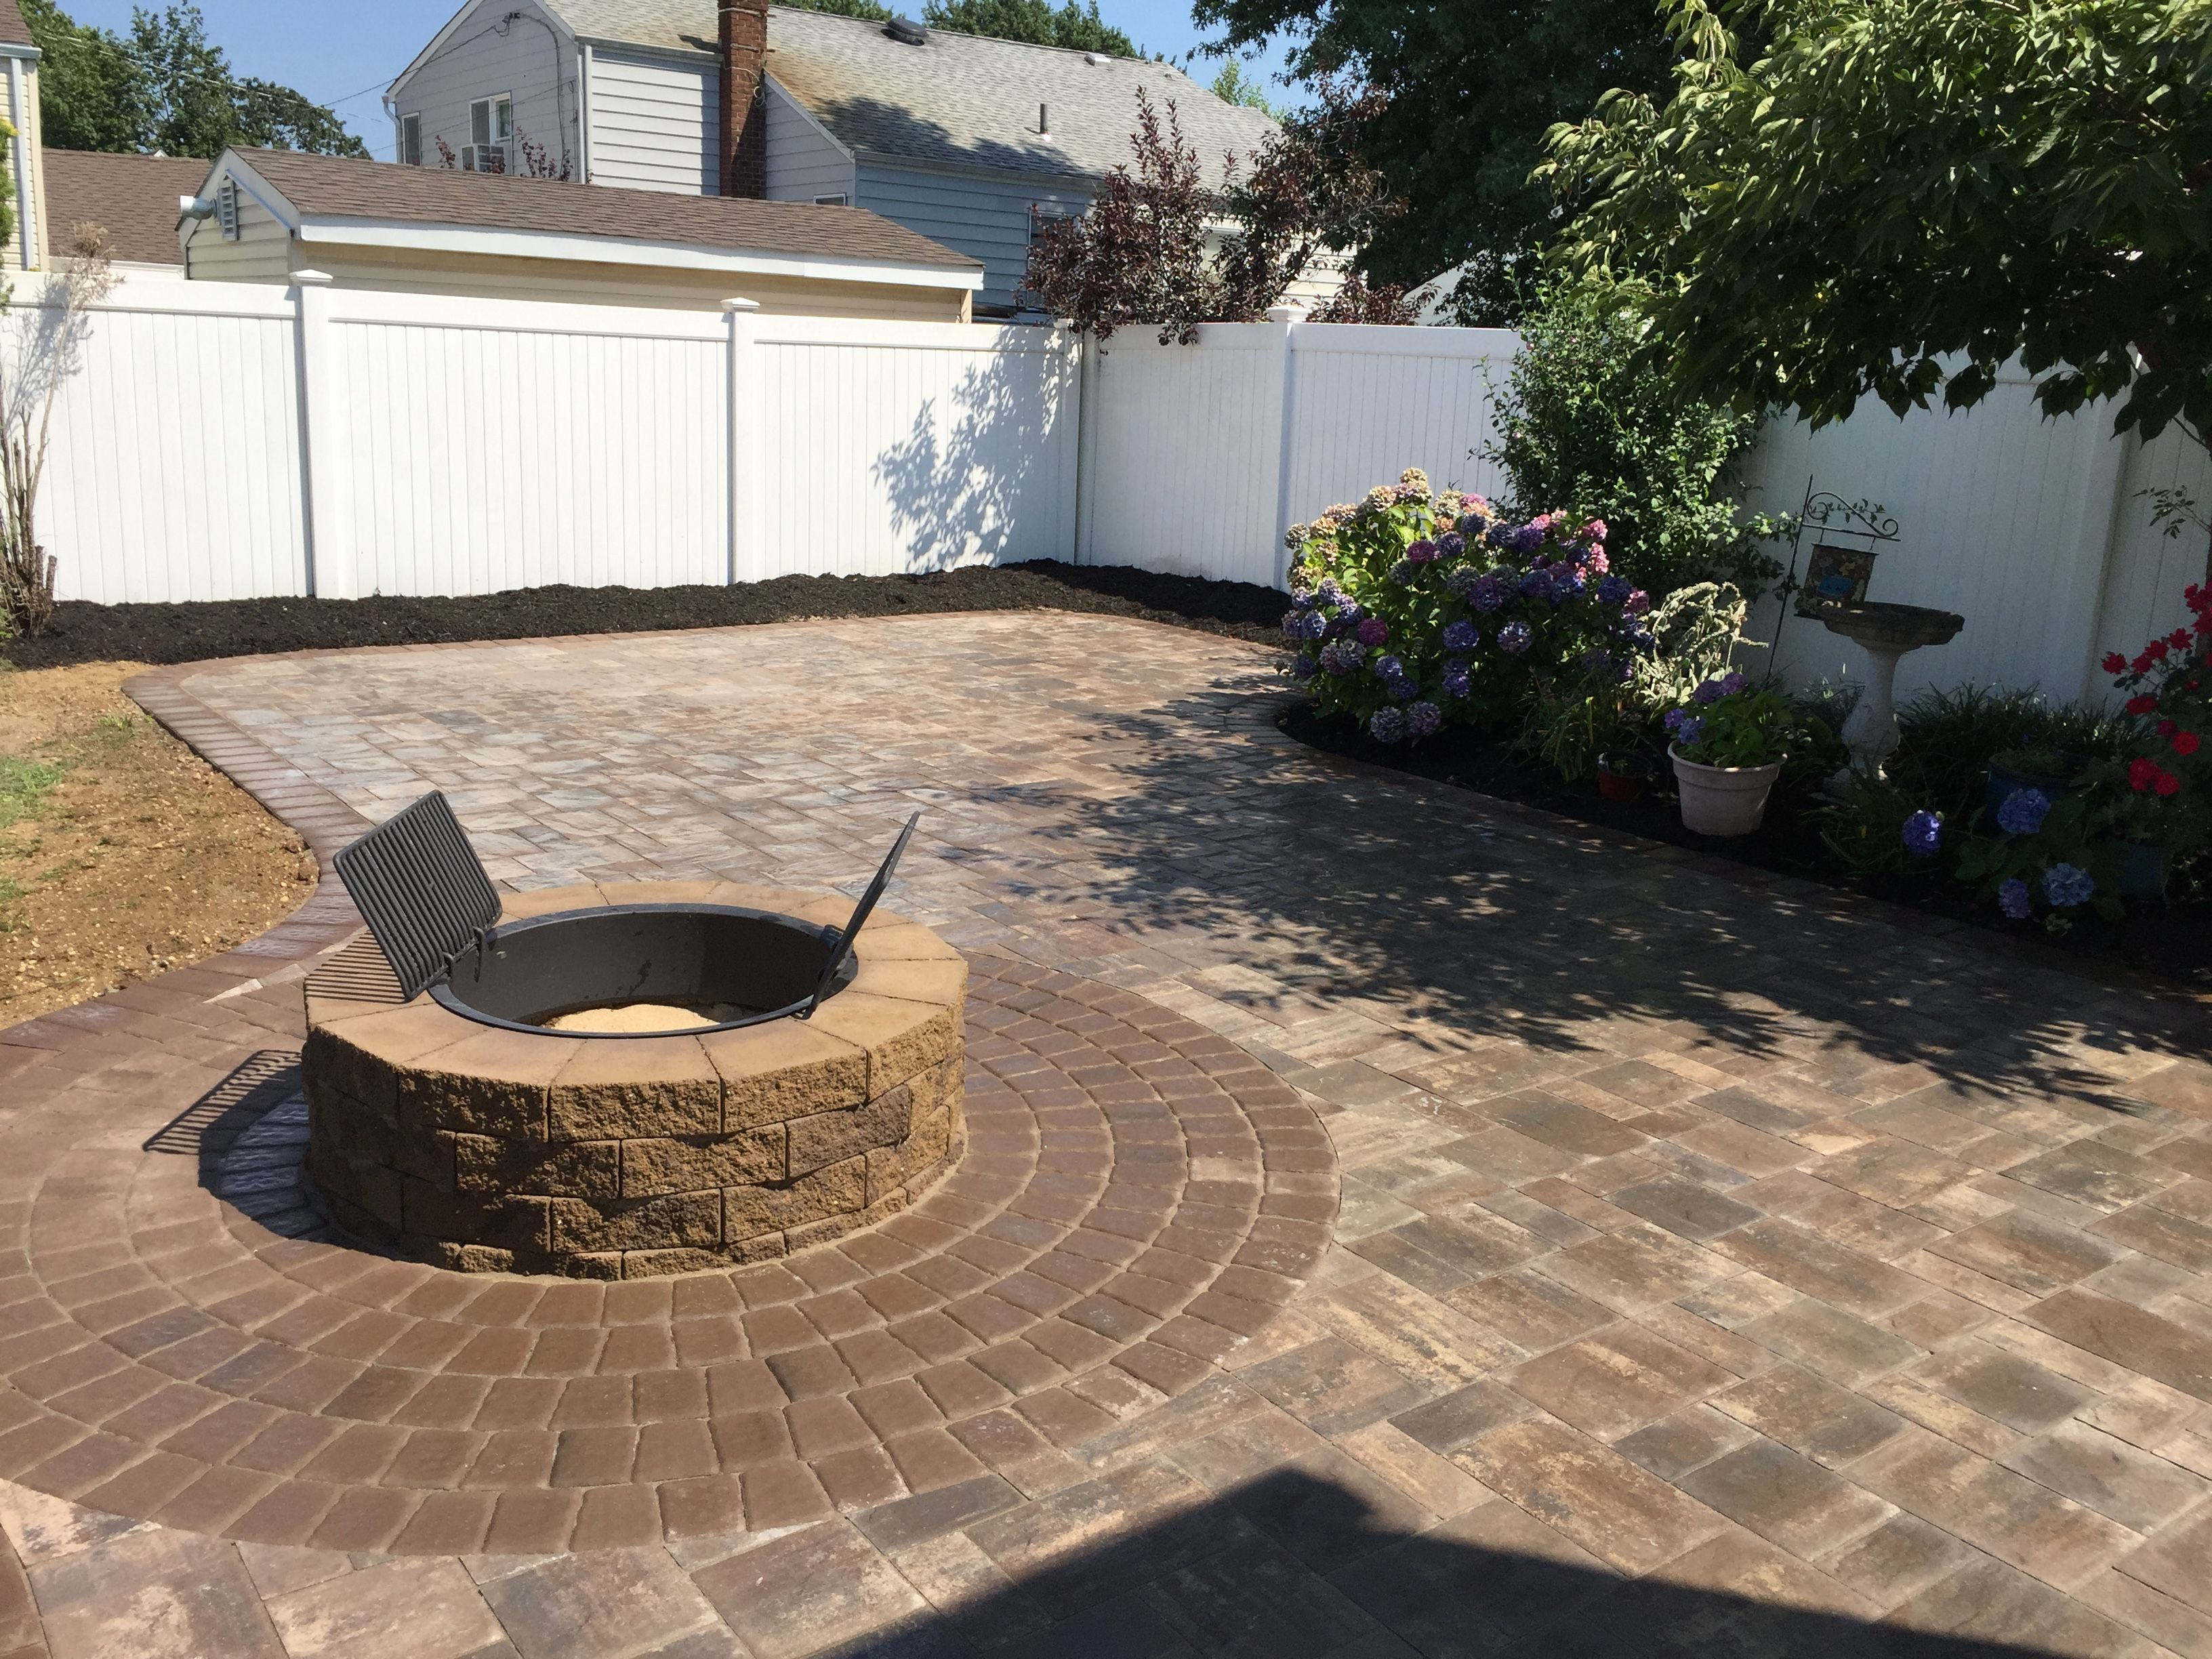 5a240d8b915753f508b6d06abaf5778d Top Result 50 Awesome Backyard Creations Fire Pit Picture 2018 Ojr7